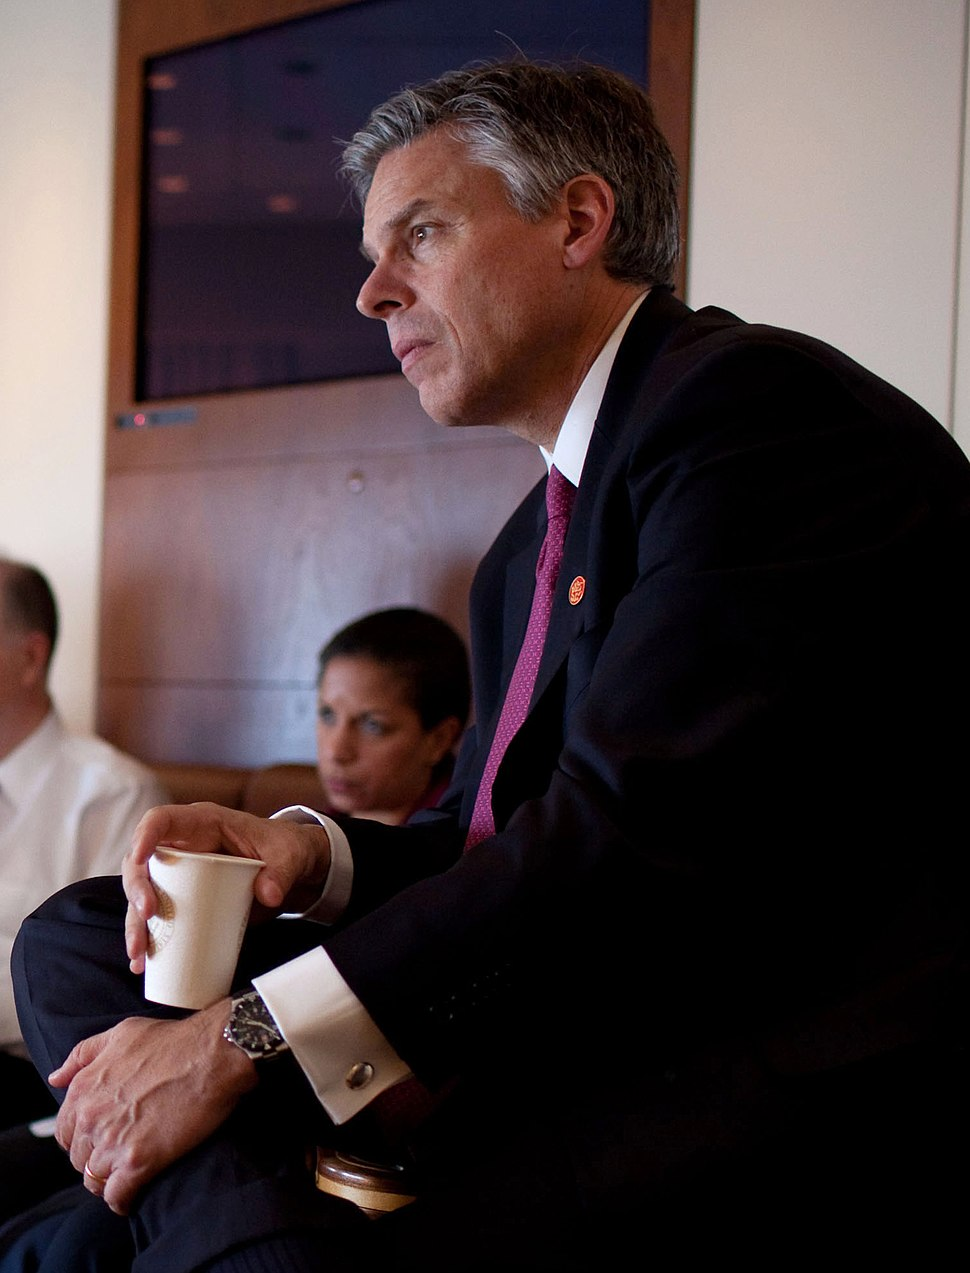 Jon Huntsman, Jr. on Air Force One